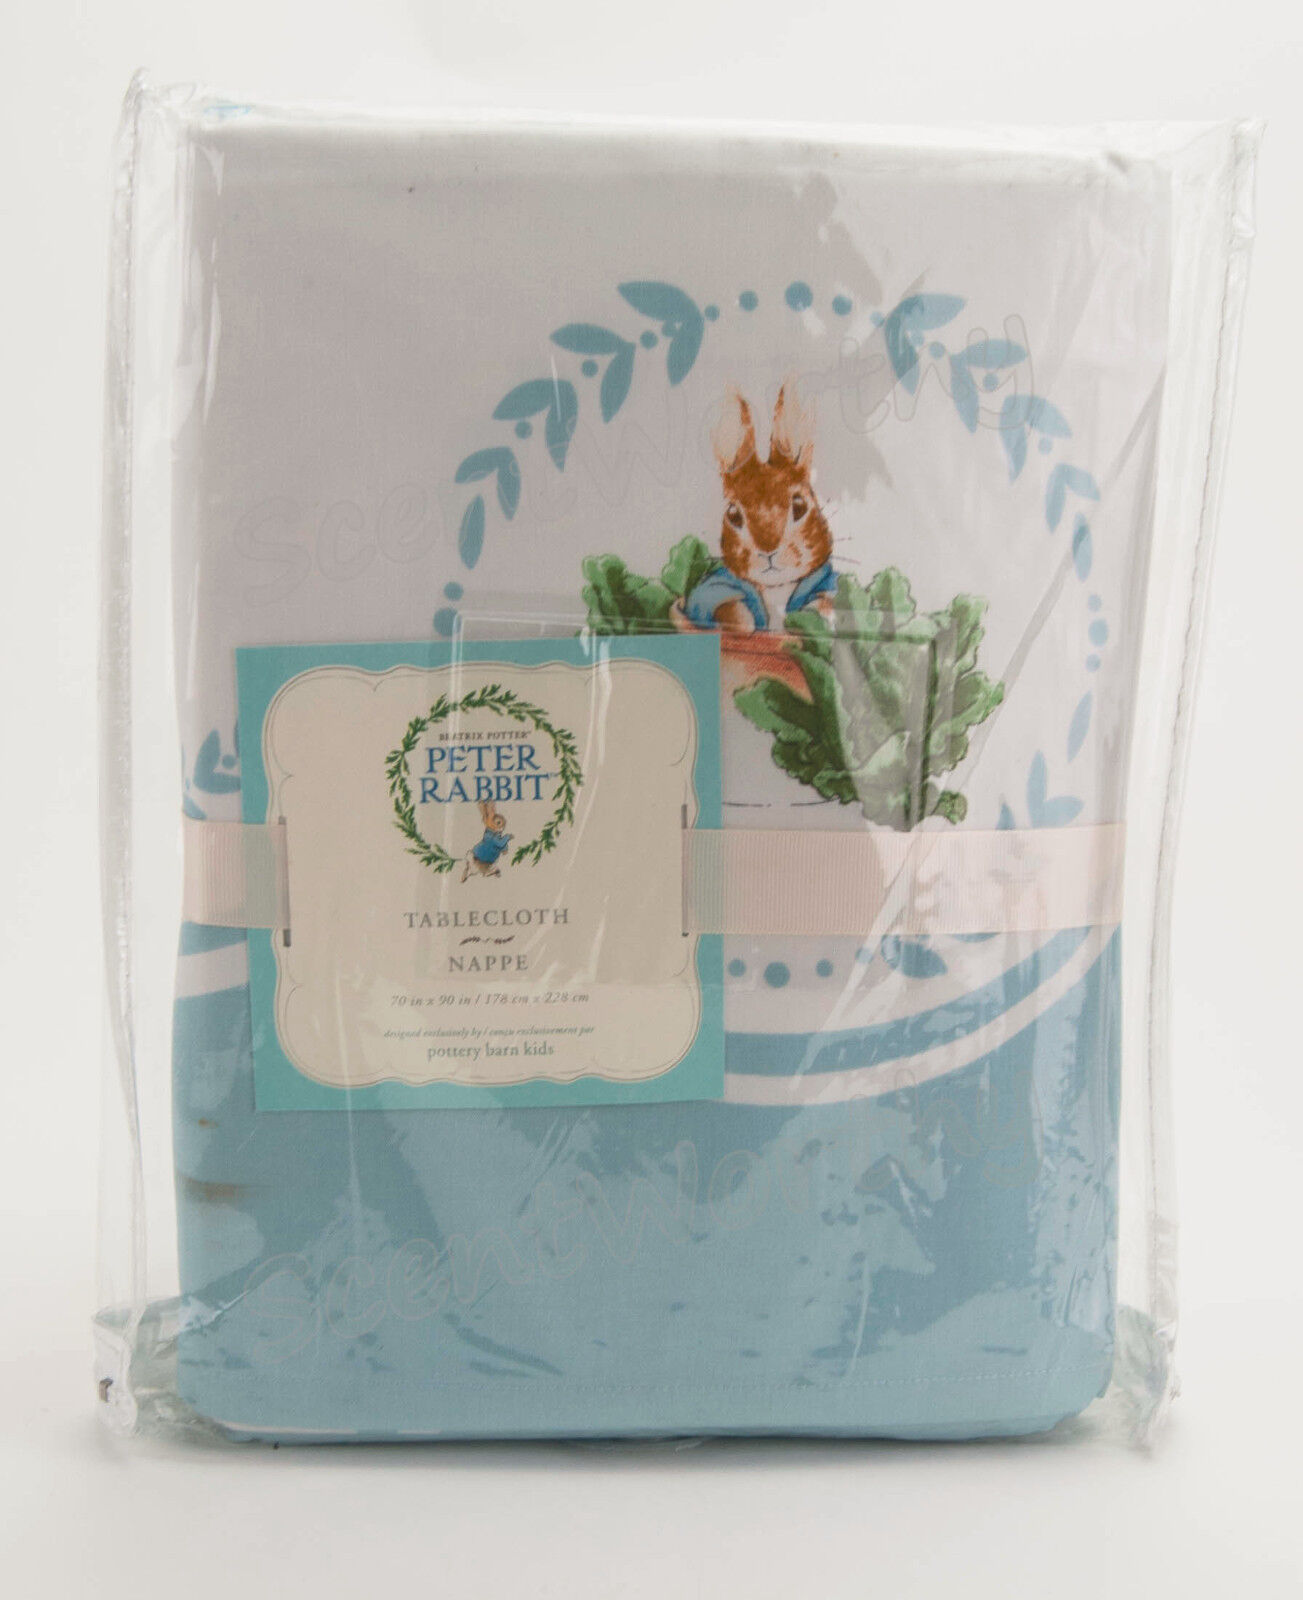 Pottery-Barn-Kids-PETER-RABBIT-Tablecloth-70x90-Beatrix-